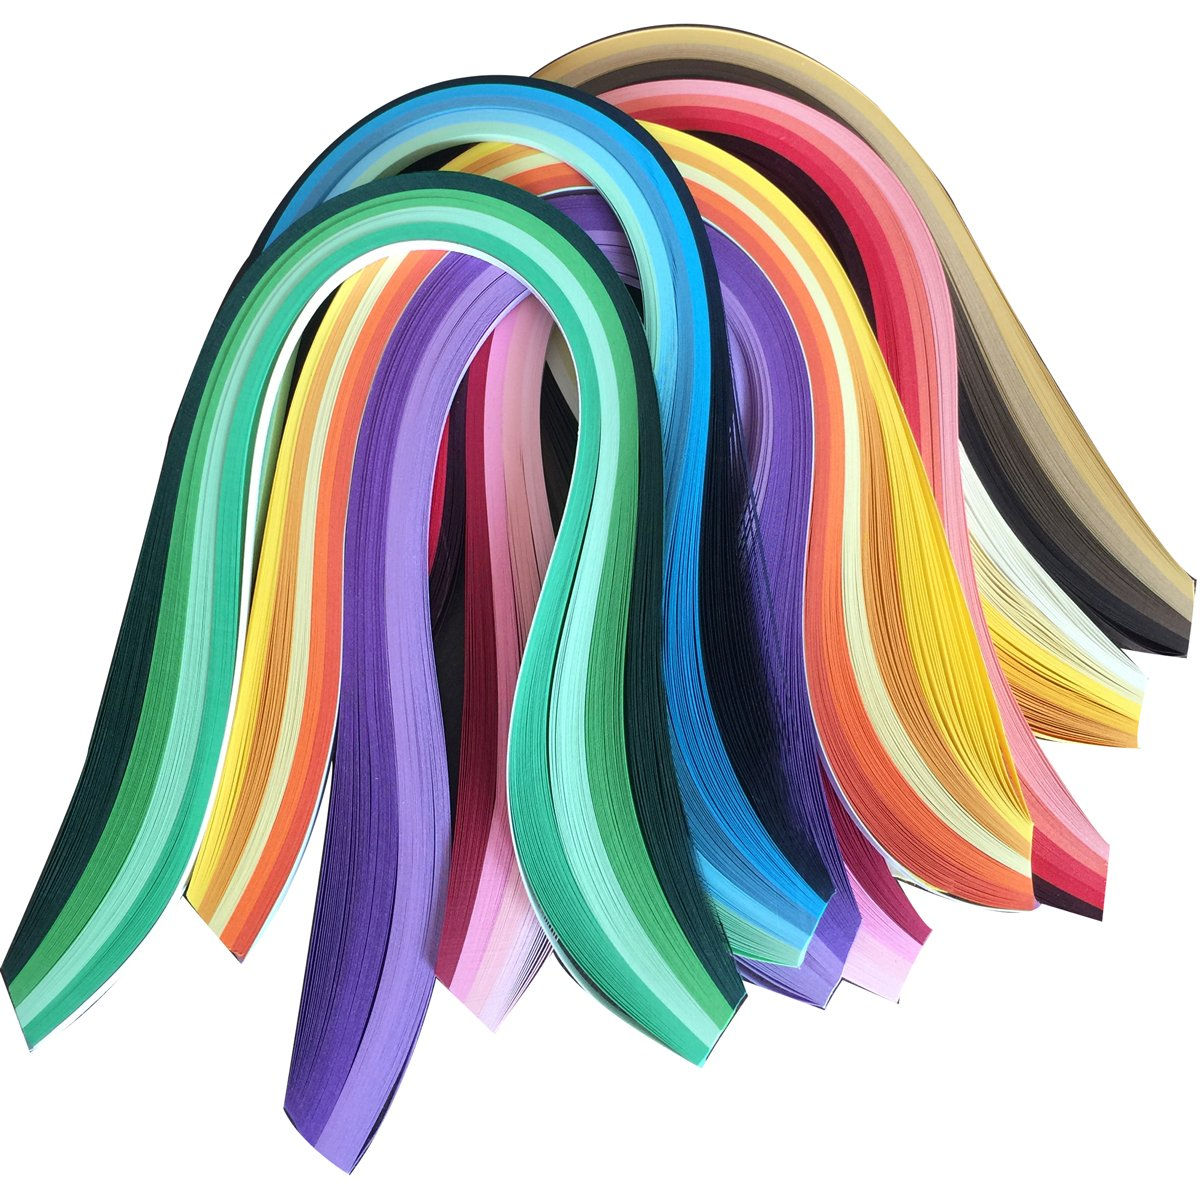 Lantee Quilling Paper Quilling Art Strips Set Pack of 8 (8 Series Colors) 4336889612